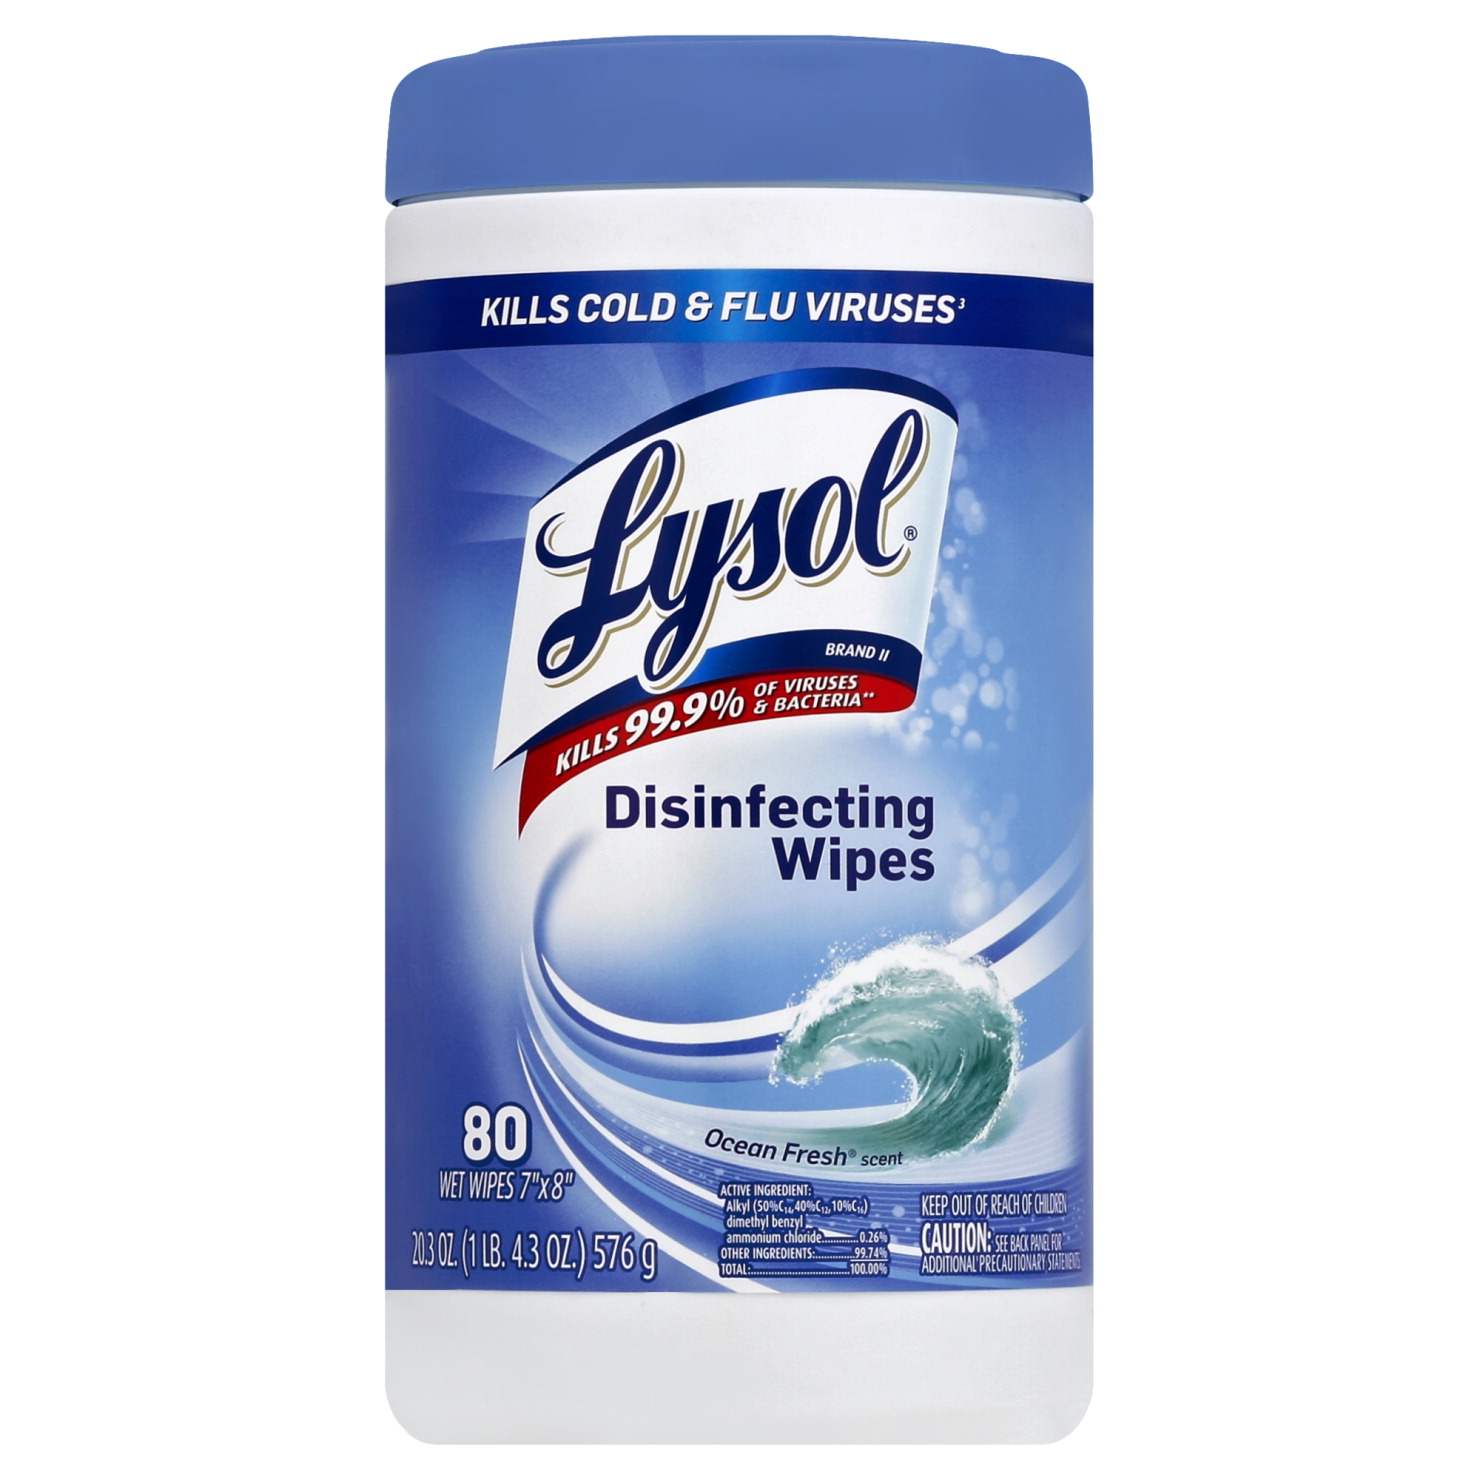 Lysol Spring Ocean Fresh Scent, Disinfecting Wipes, 80 Count, Case of 6